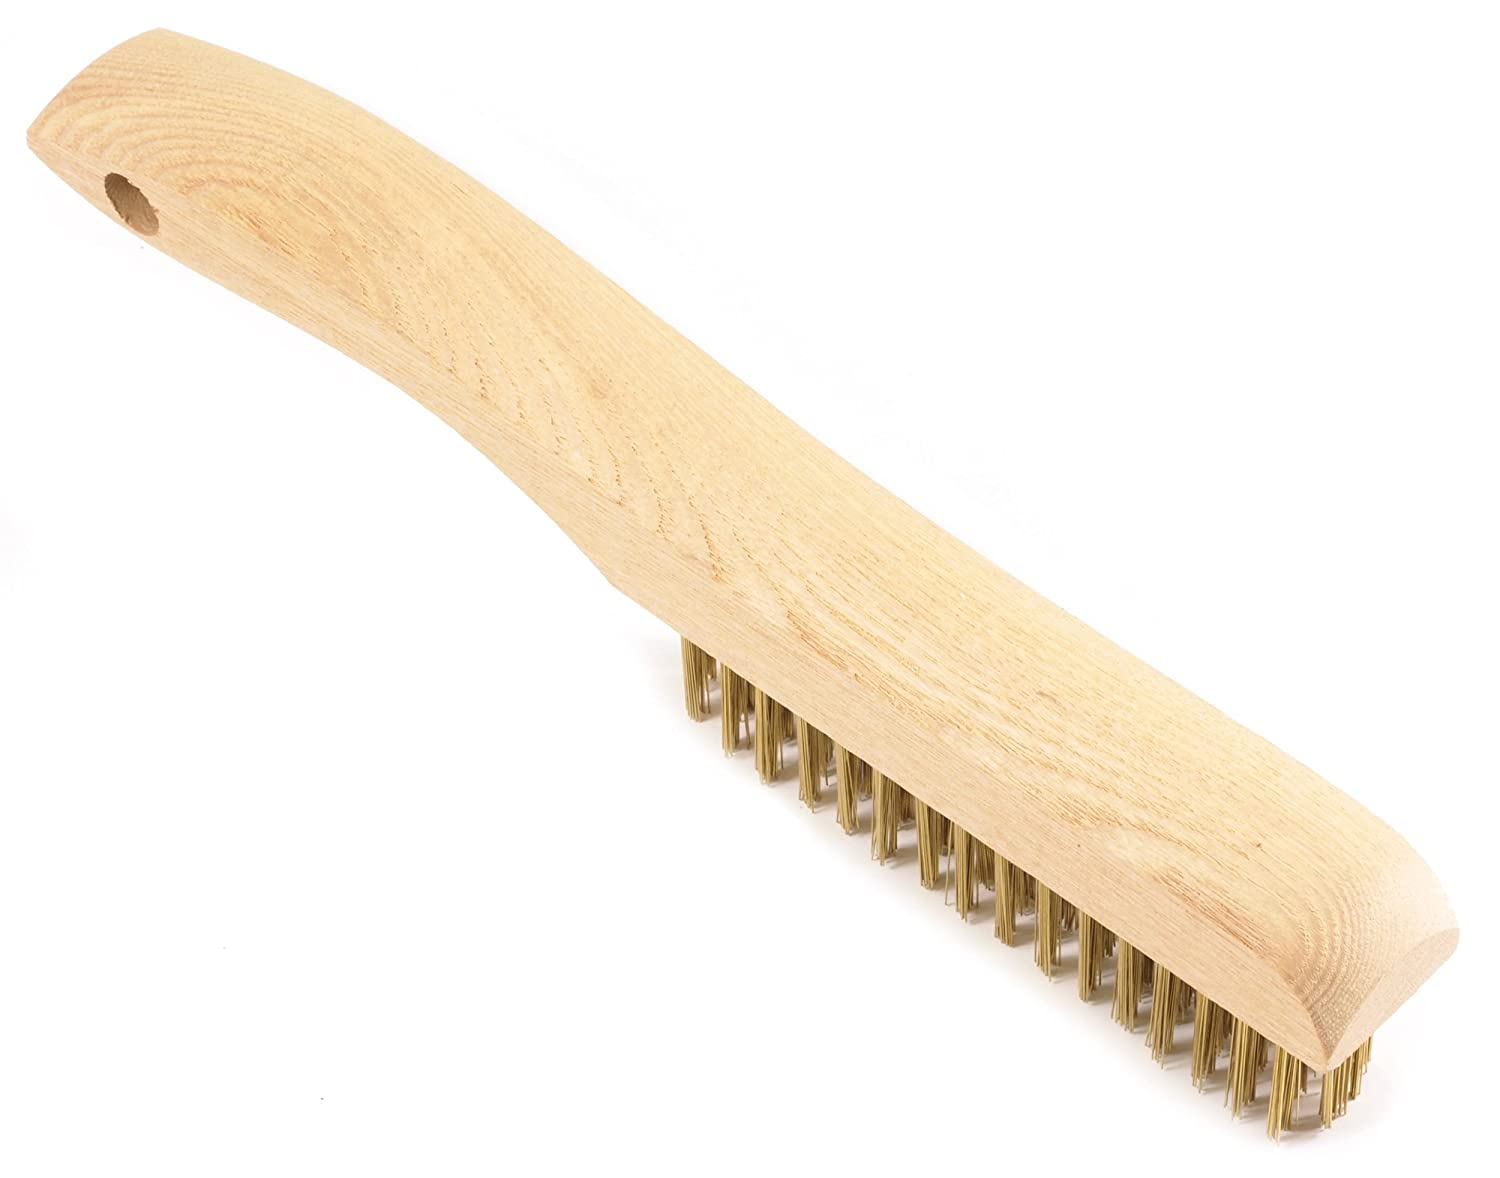 10-1//4-Inch-by-.012-Inch Brass with Wood Shoe Handle Forney 70519 Wire Scratch Brush